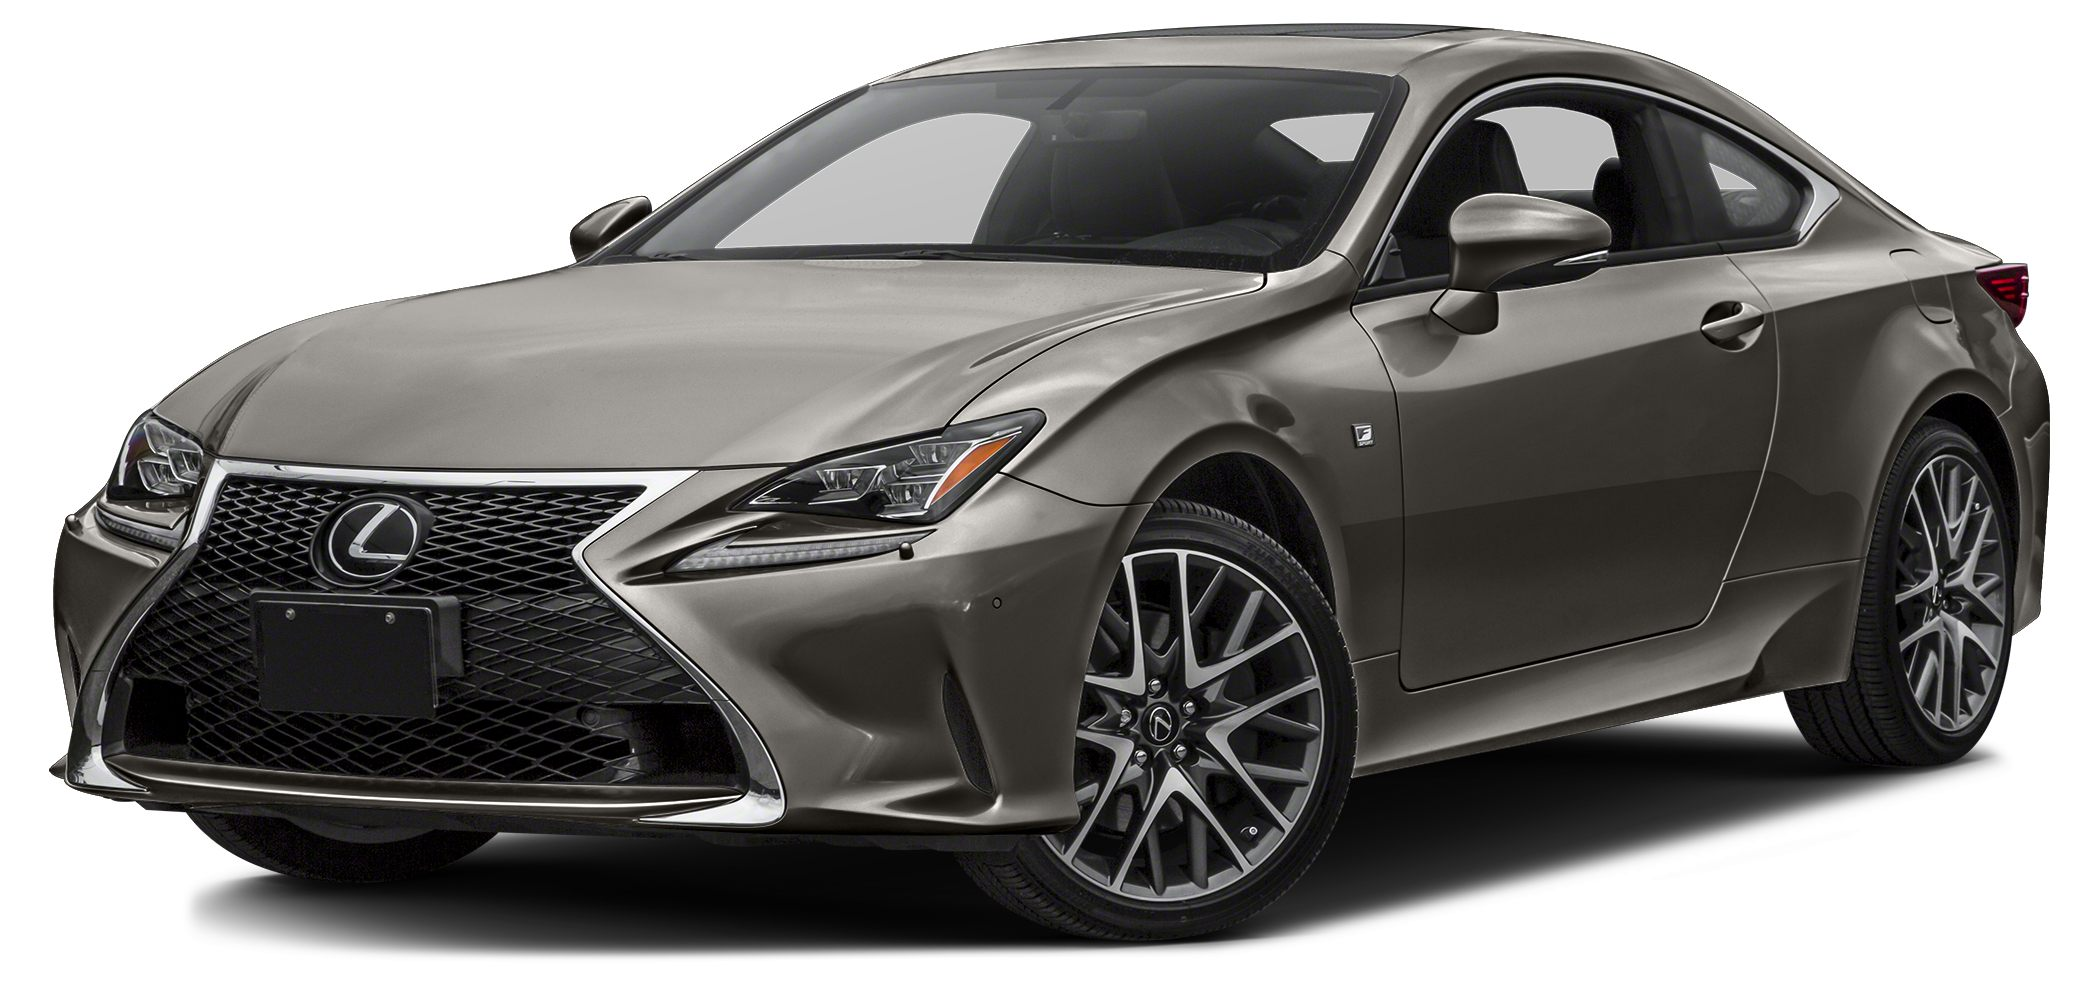 Lexus Rc Coupe In California For Sale ▷ Used Cars Buysellsearch